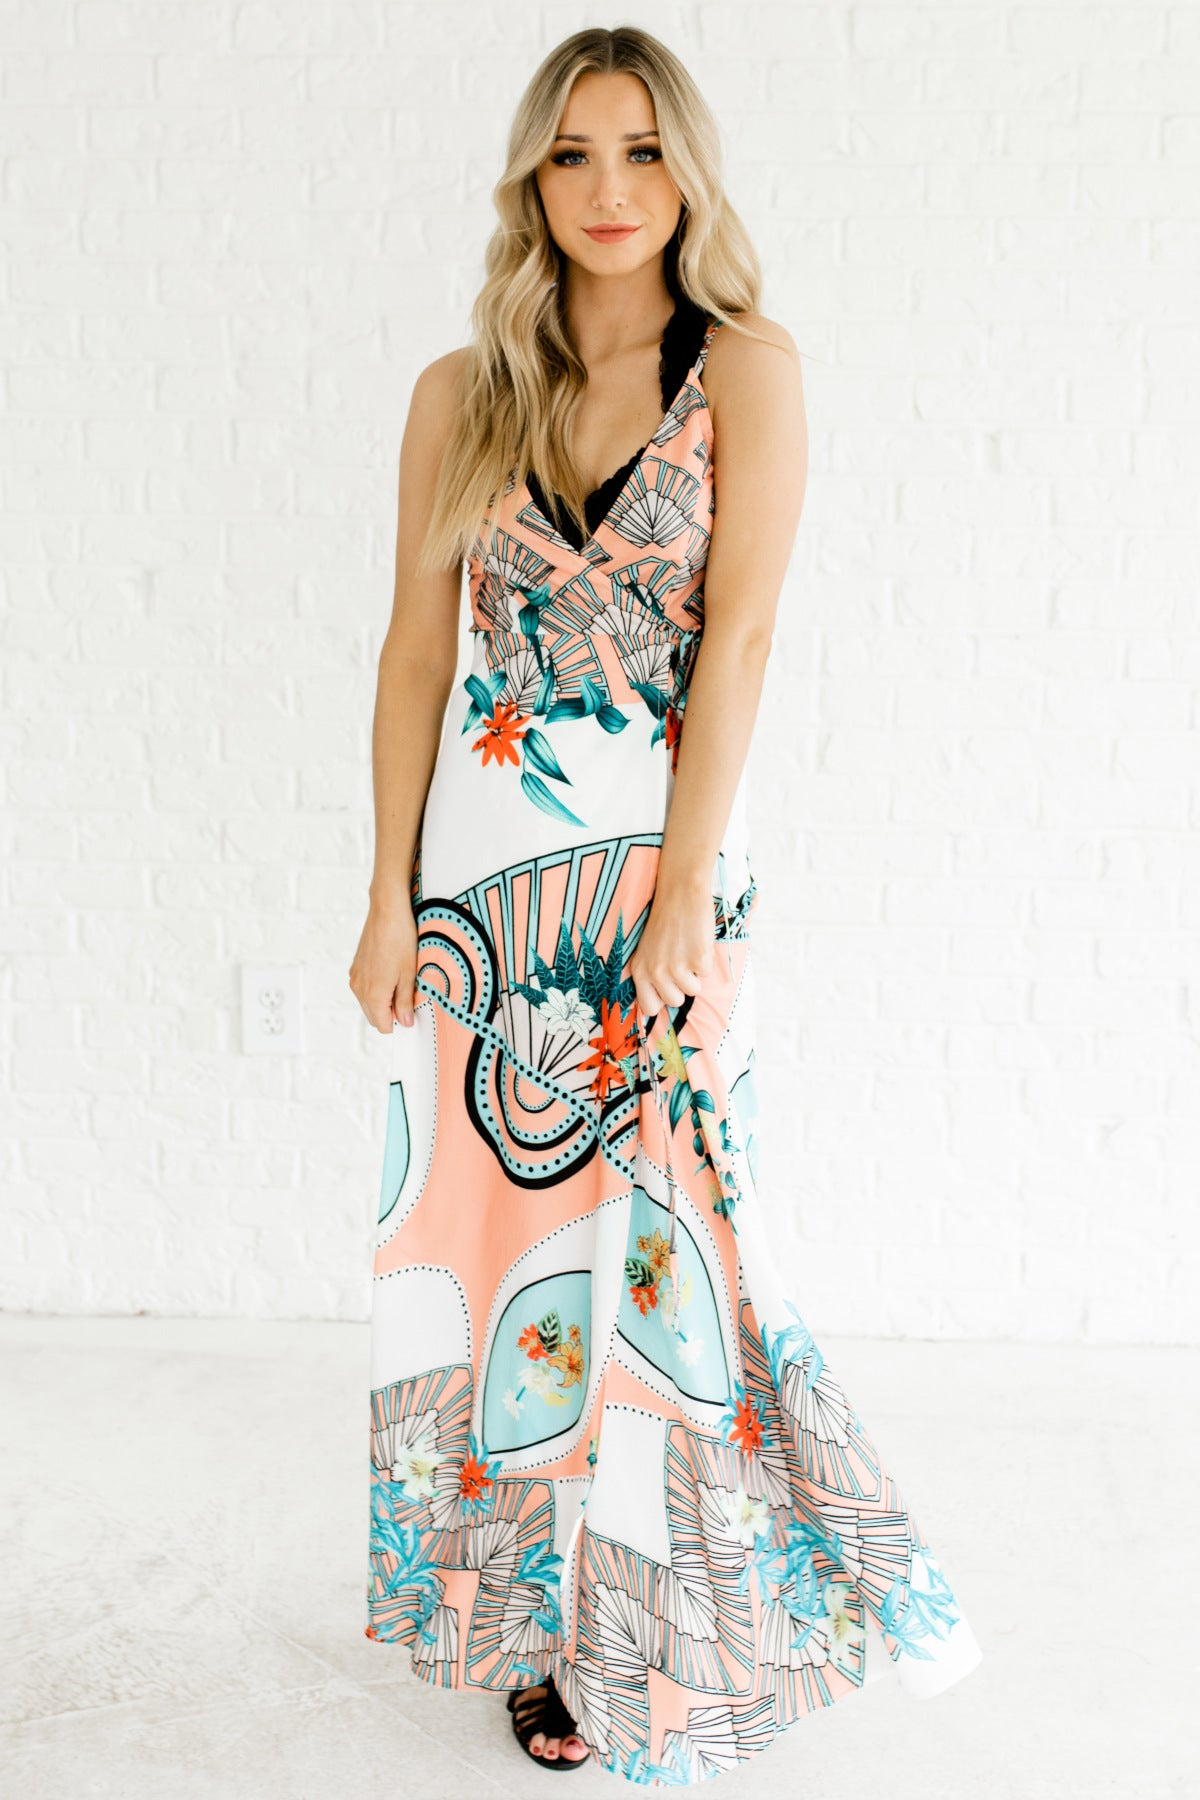 White Turquoise Coral Peach Patterned Boutique Maxi Wrap Dresses